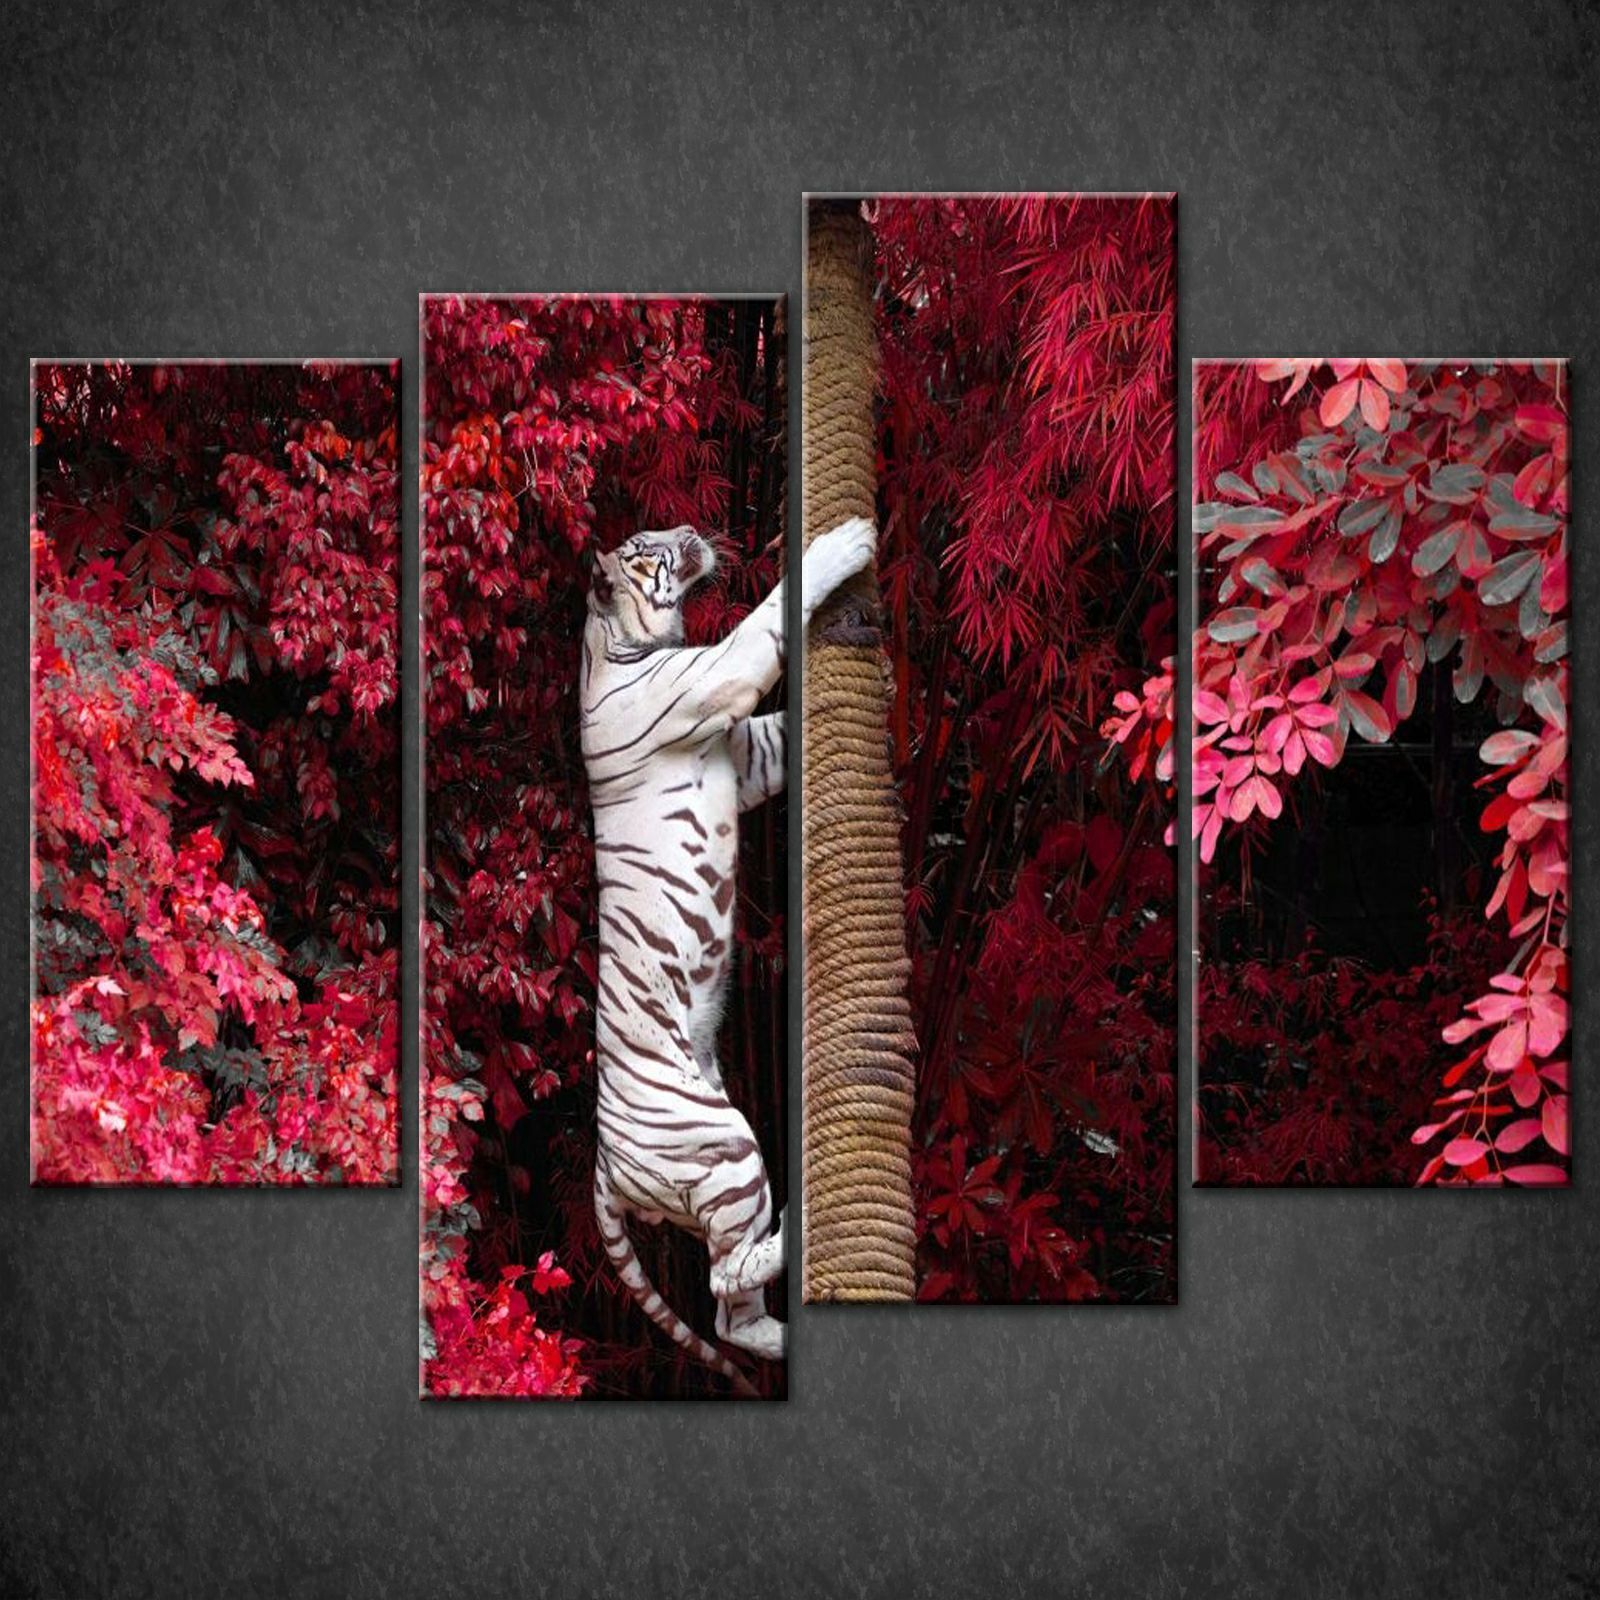 Wall Art Split Canvas : Tiger climbing tree split canvas wall art pictures prints